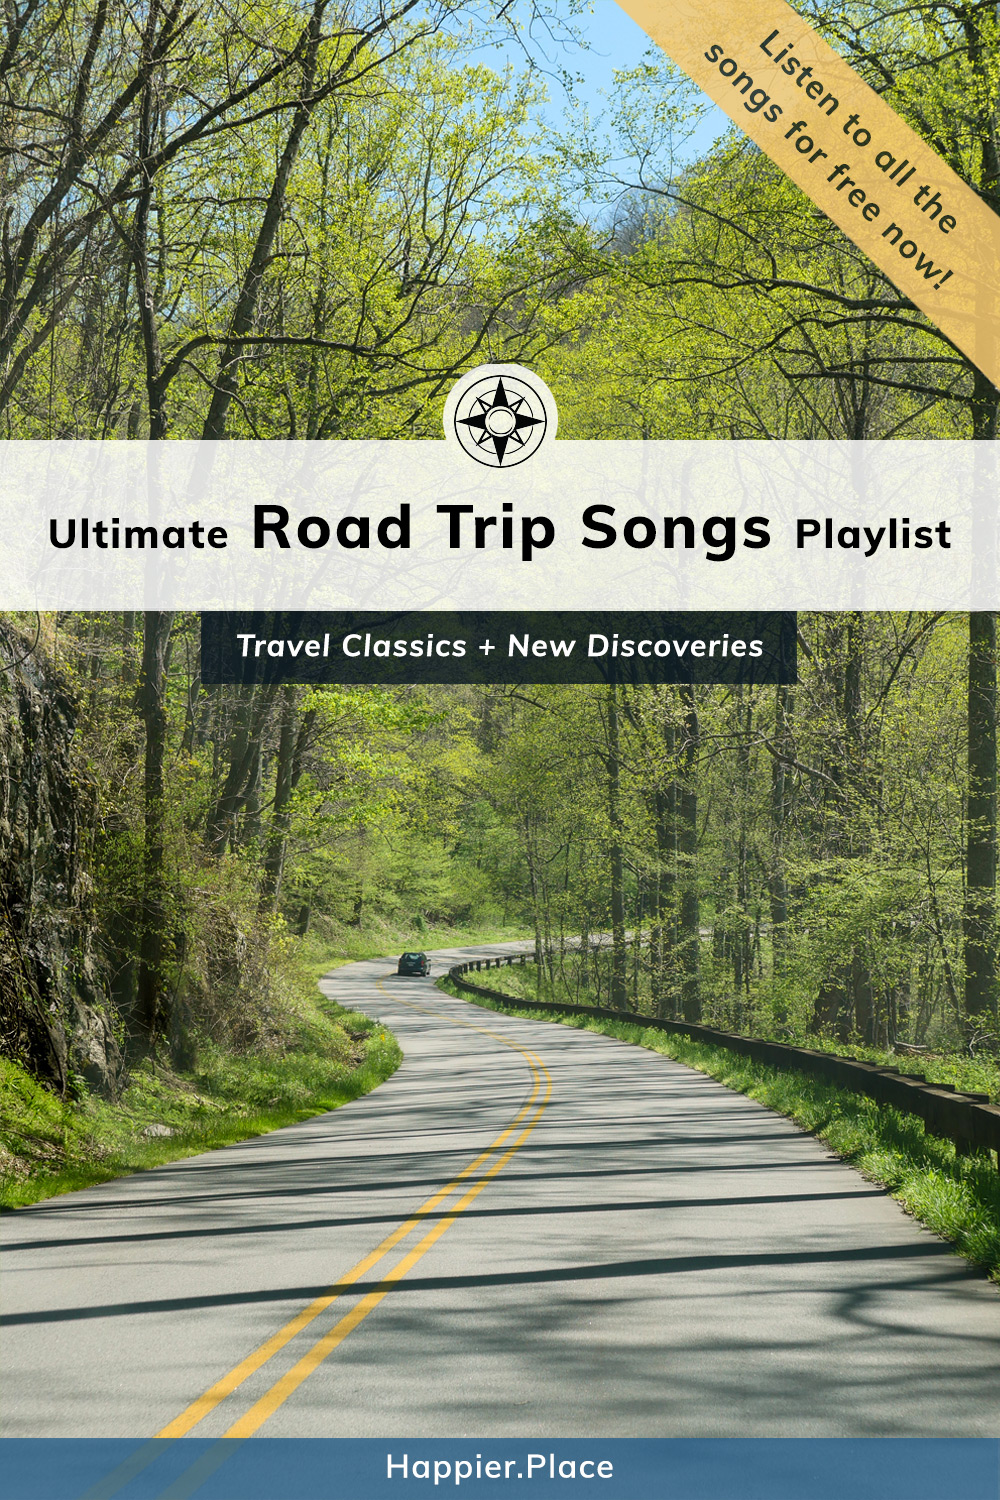 Ultimate Road Trips Songs Playlist featuring travel classics and new discoveries. Listen to all the songs now for free.